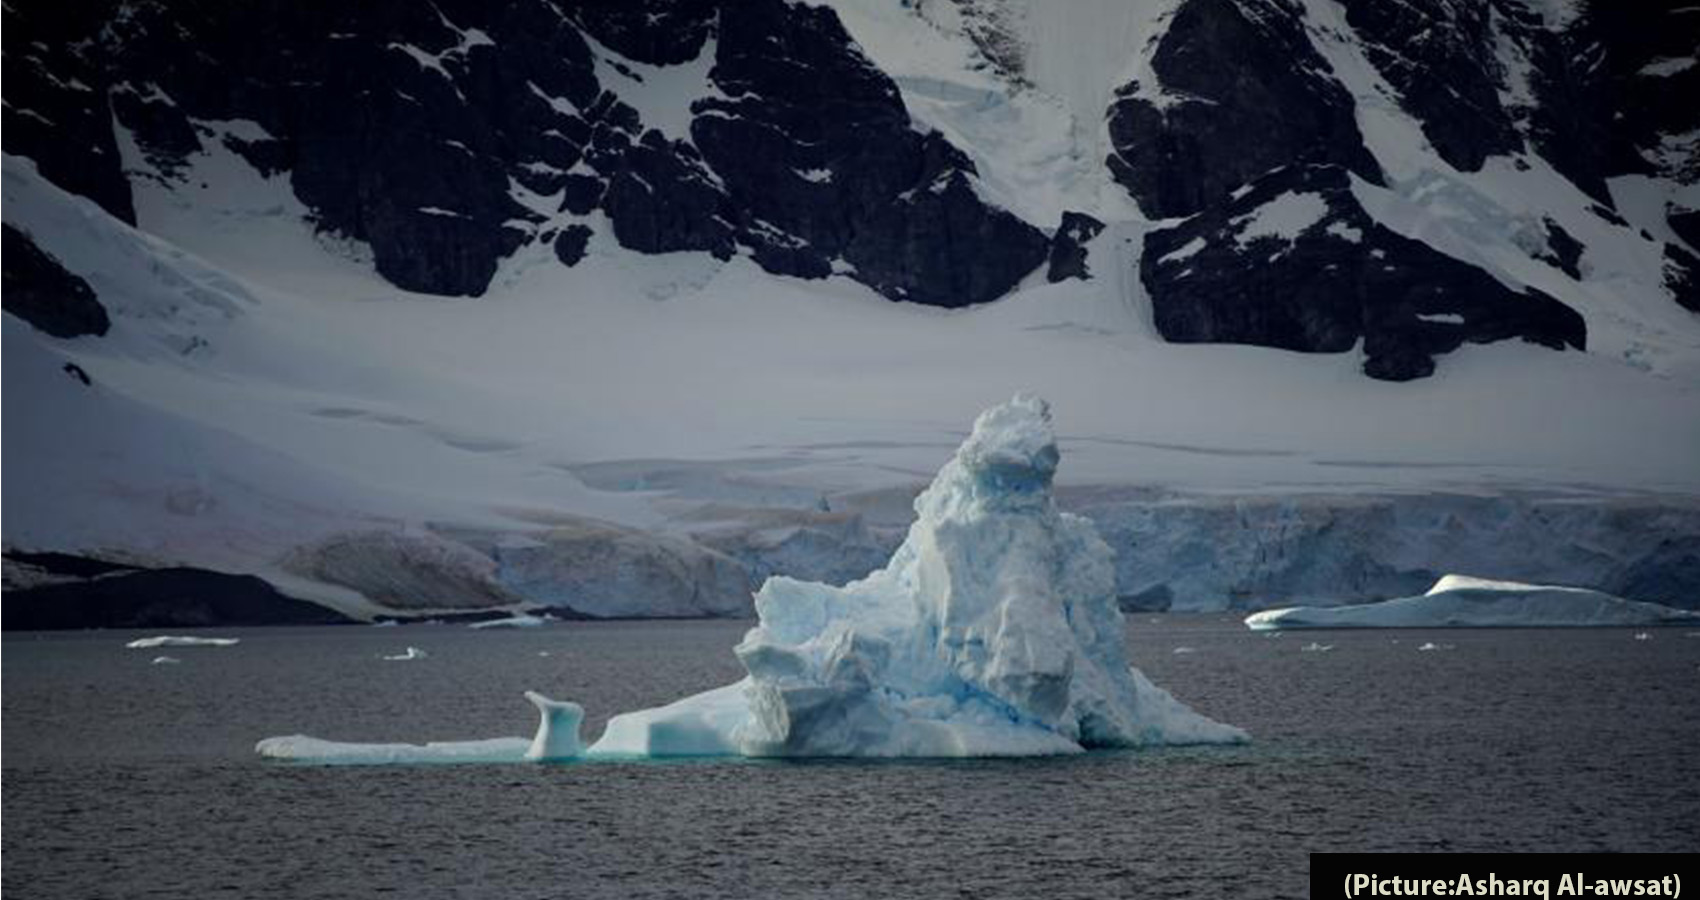 Decline In CO2 Cooled Earth's Climate Over 30 Million Years Ago, Scientists Find